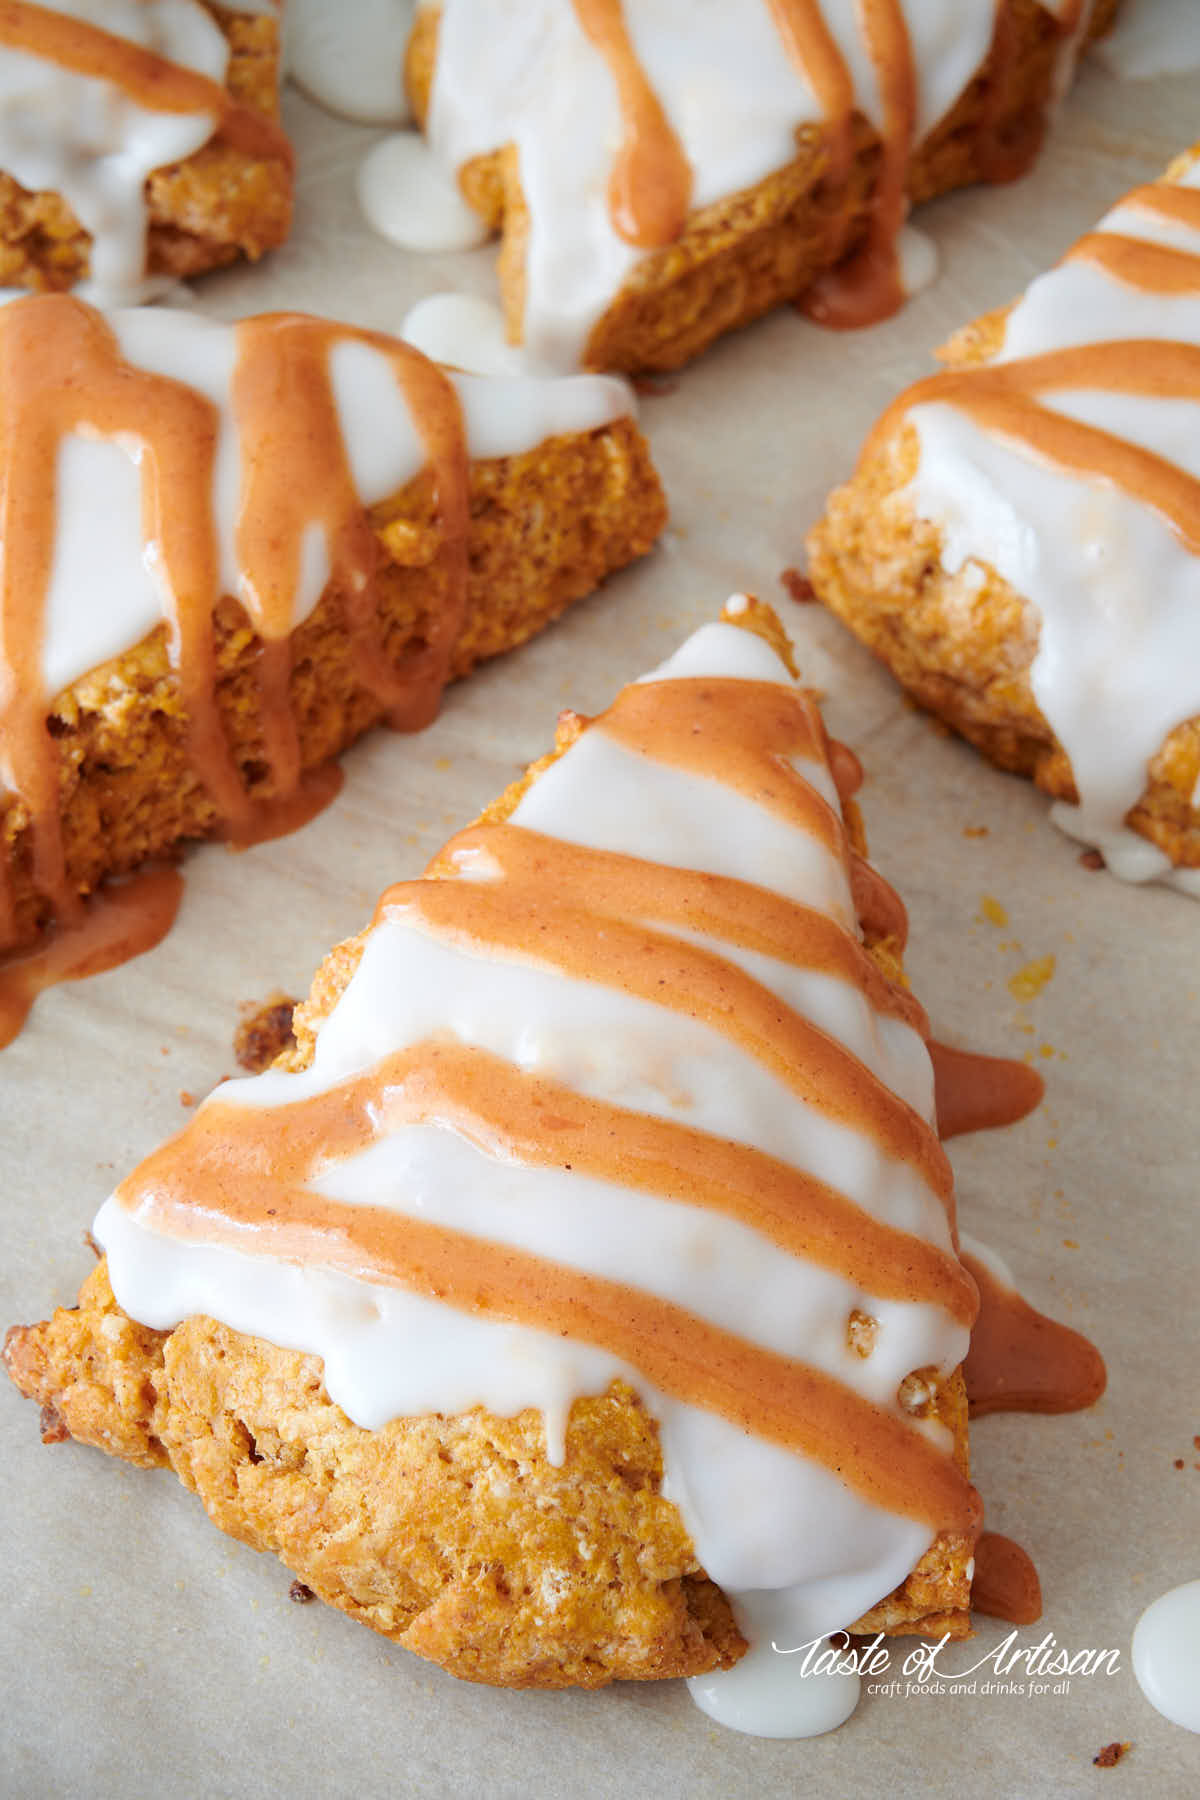 Pumpkin scones, covered with white glaze and stripes of orange glaze.